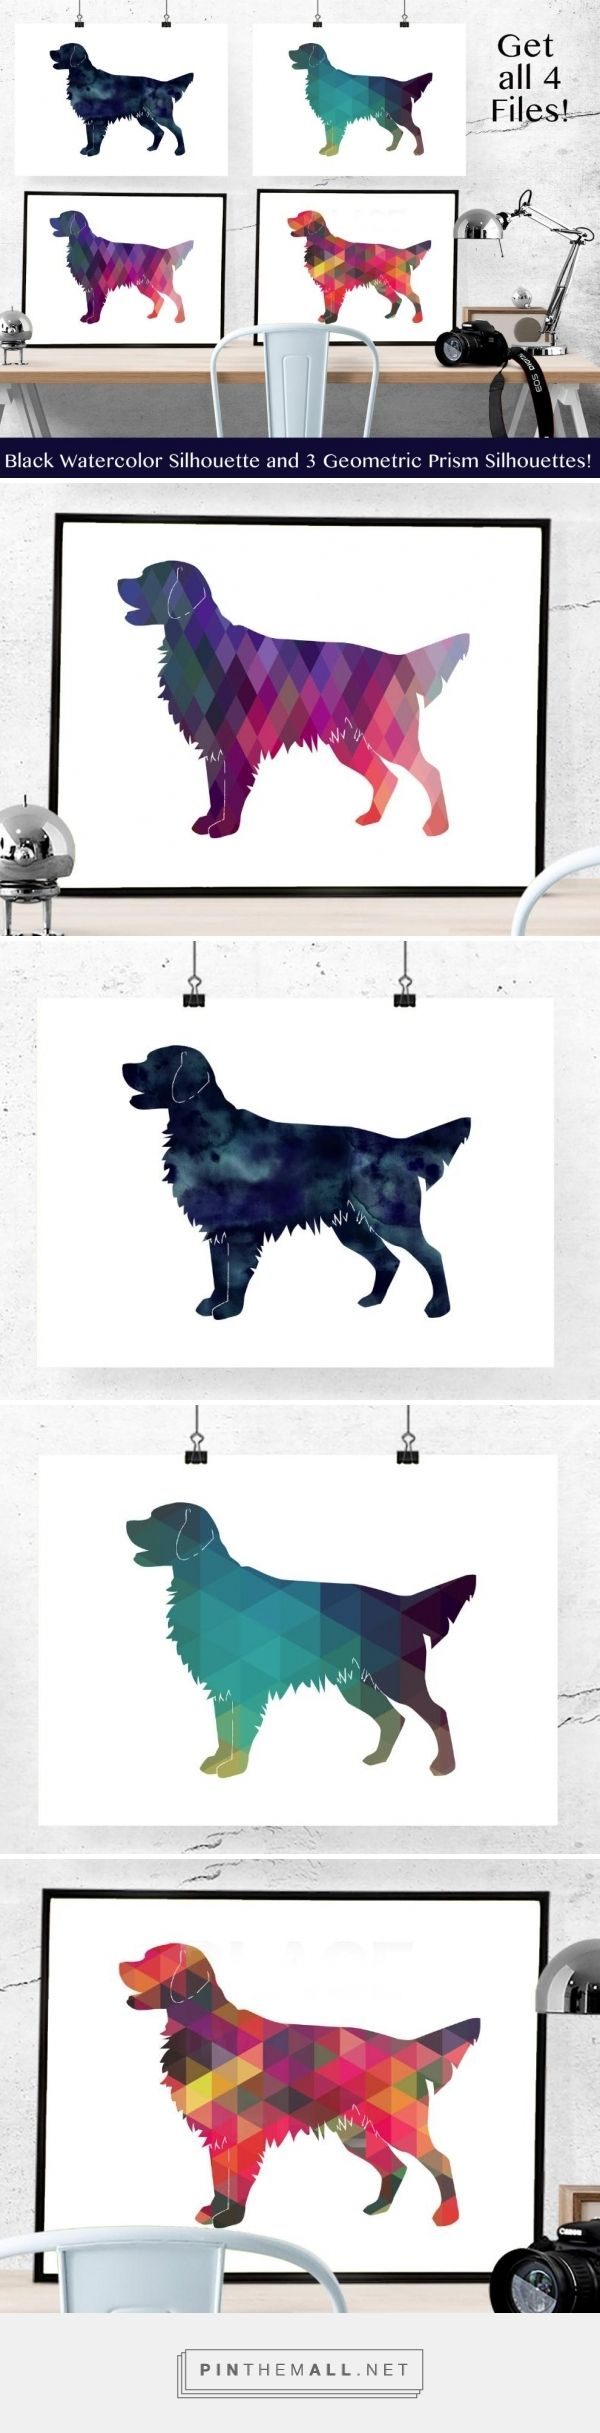 ❤ Golden Retriever silhouettes with black watercolor or geometric ...